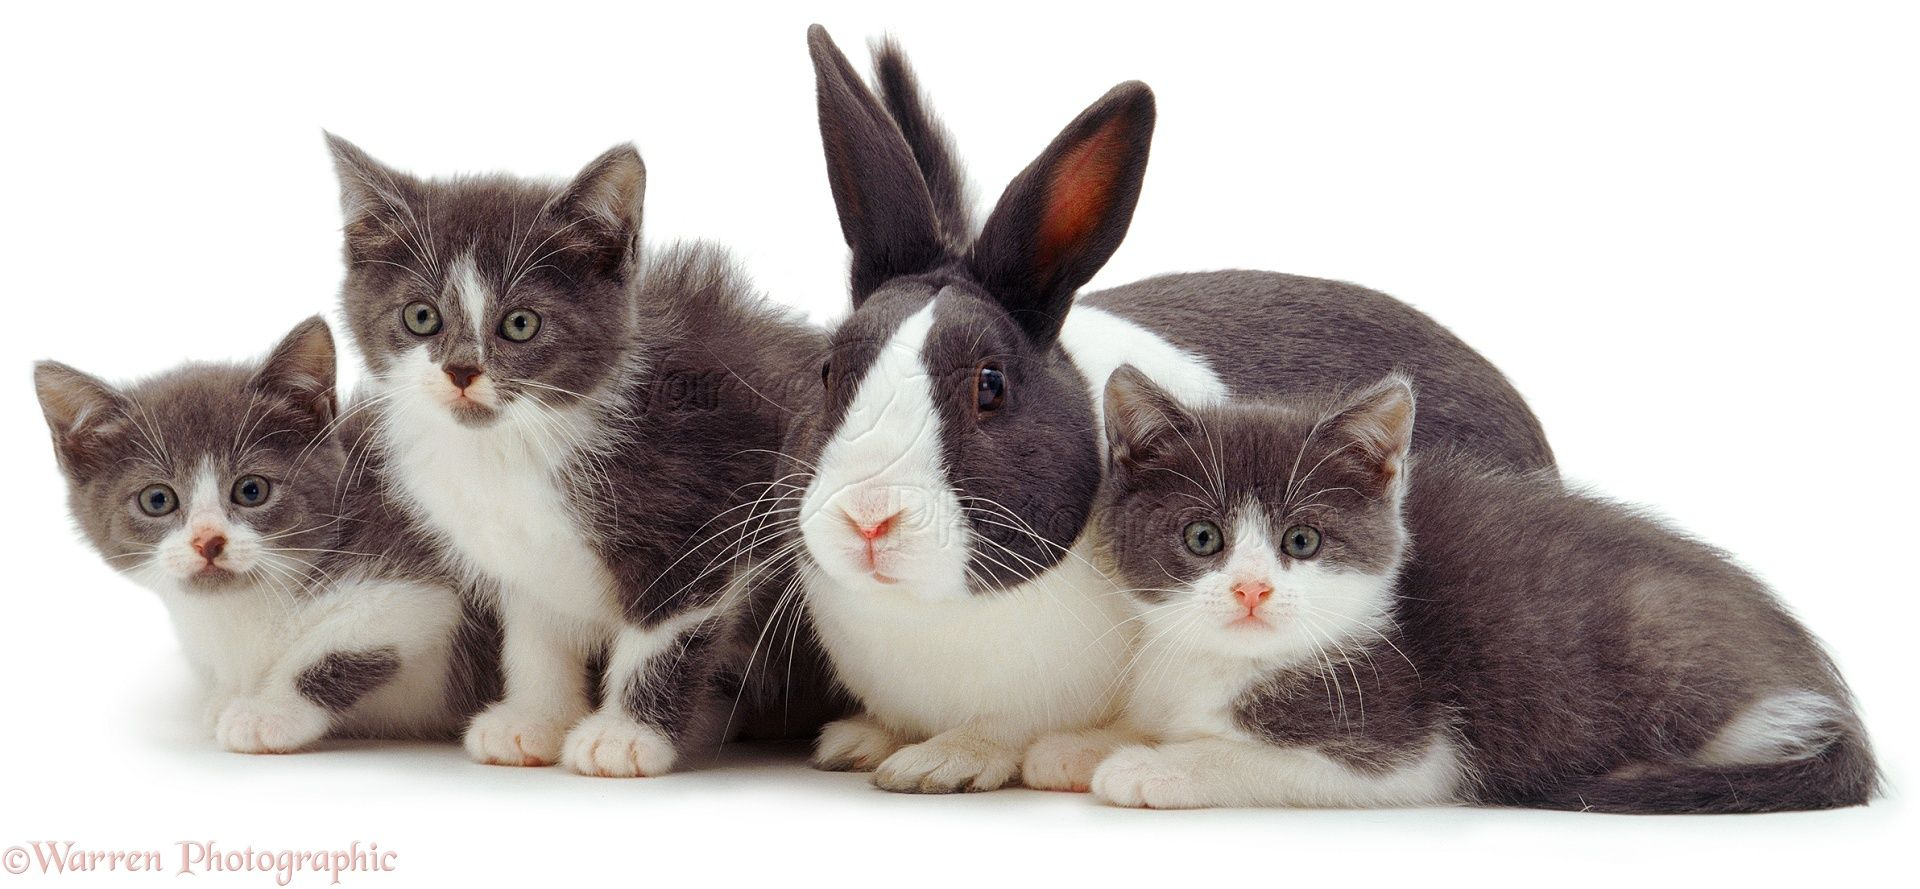 This Is Our Brother Grey And White Kitten White Kittens Rabbit Photos